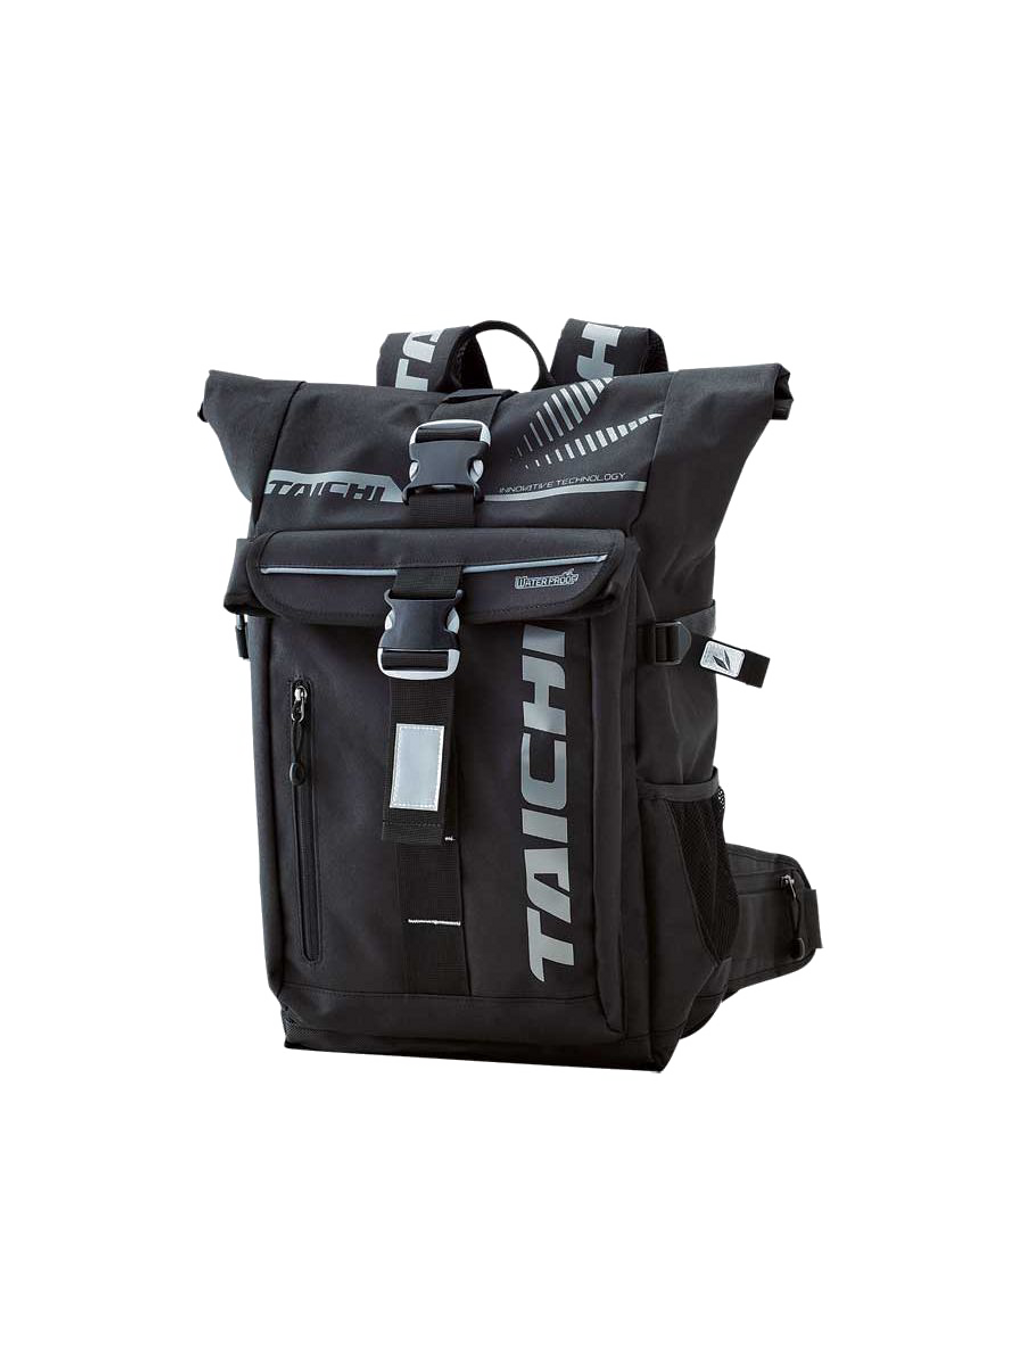 37 RS TAICHI RSB274 SPORT WP BACK PACK BLACK (2).png